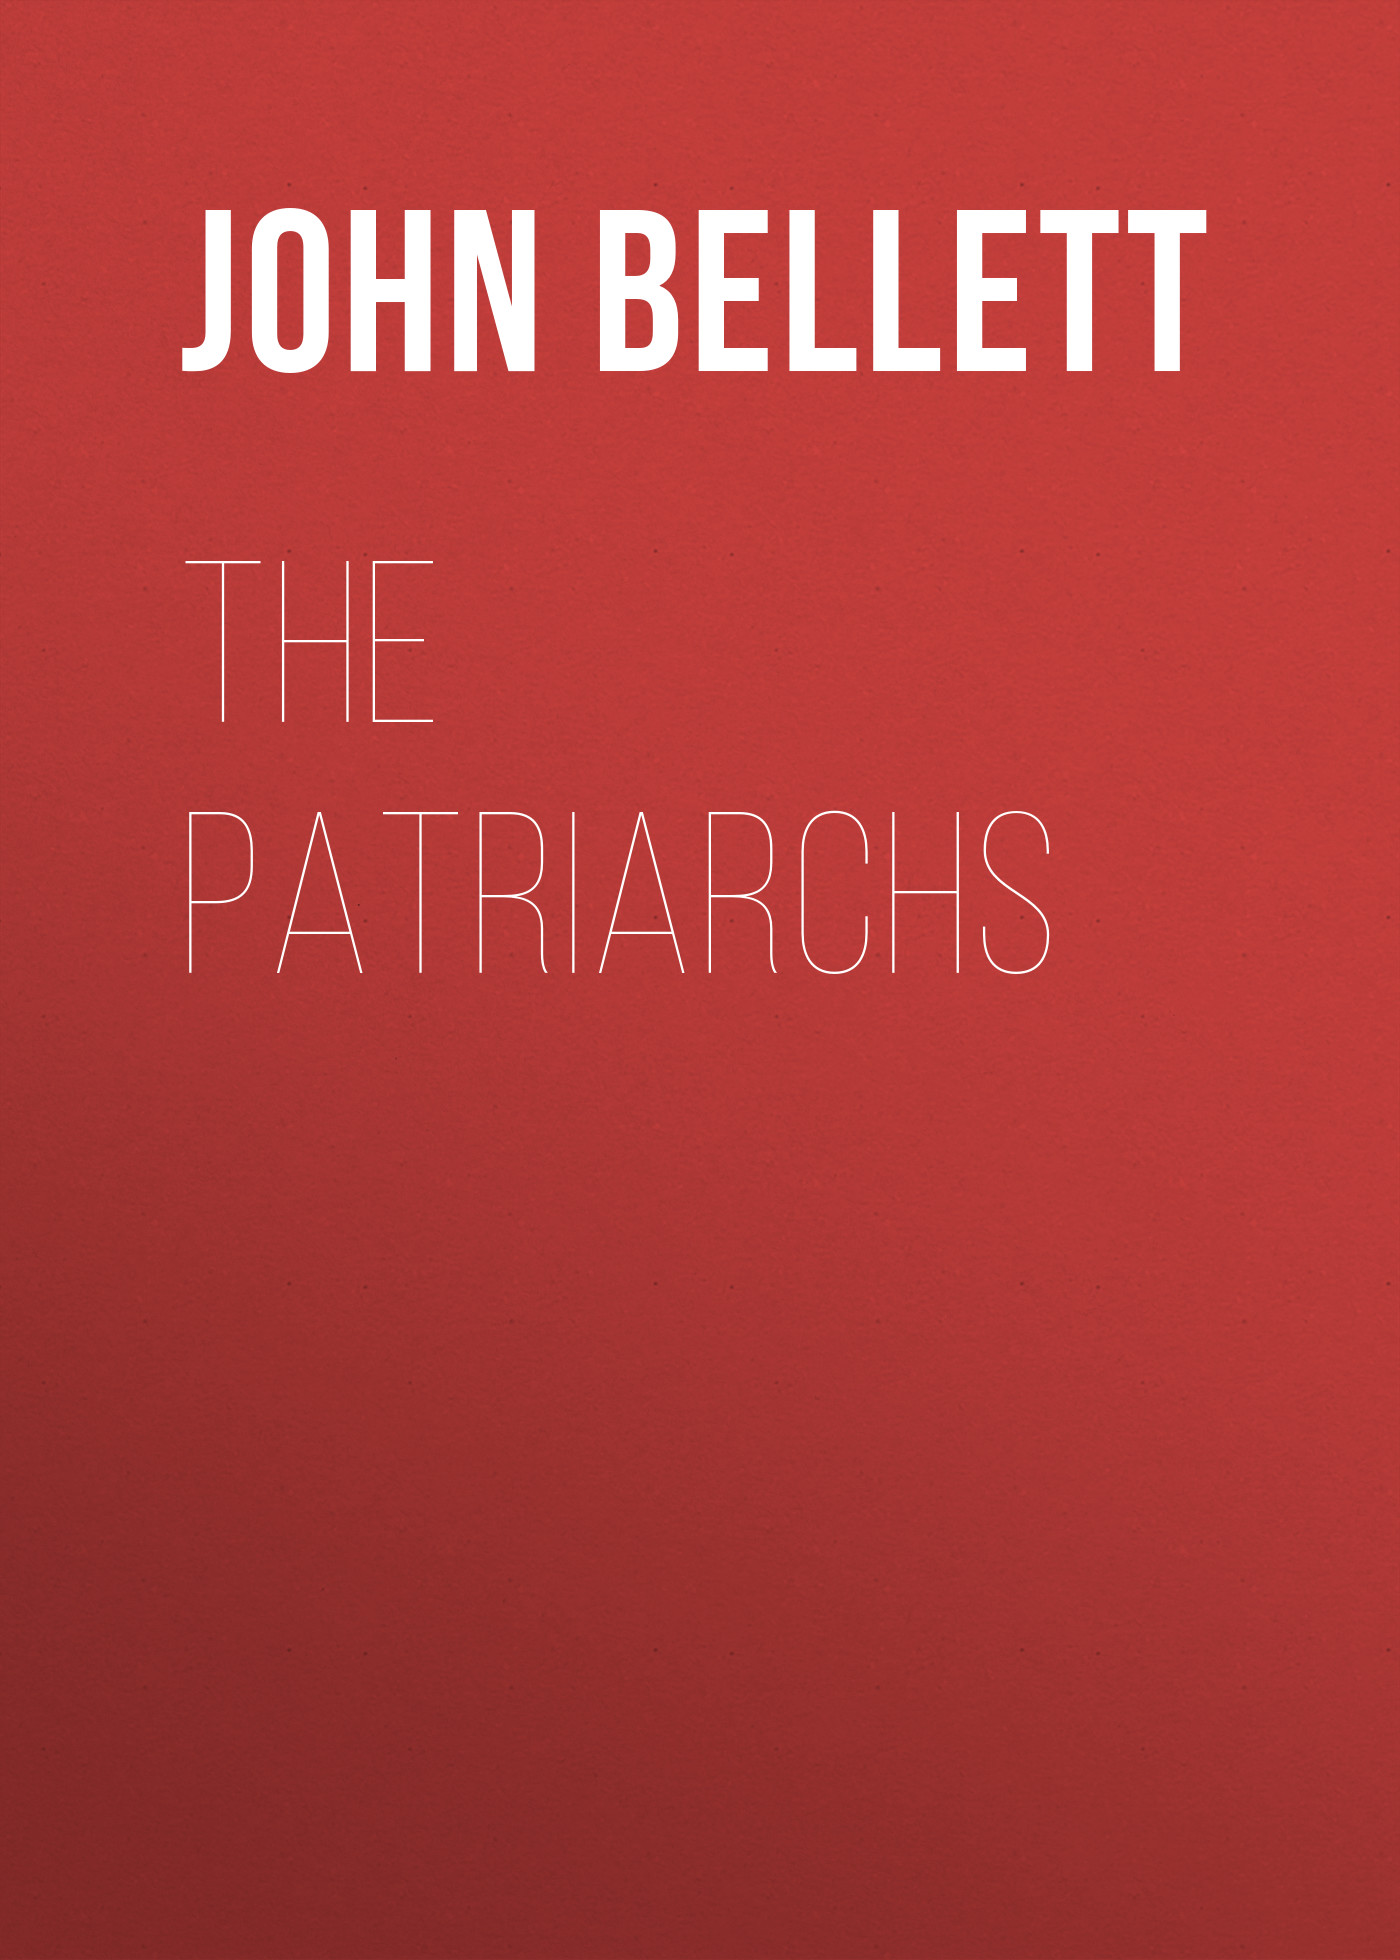 Bellett John Gifford The Patriarchs bellett john gifford the patriarchs